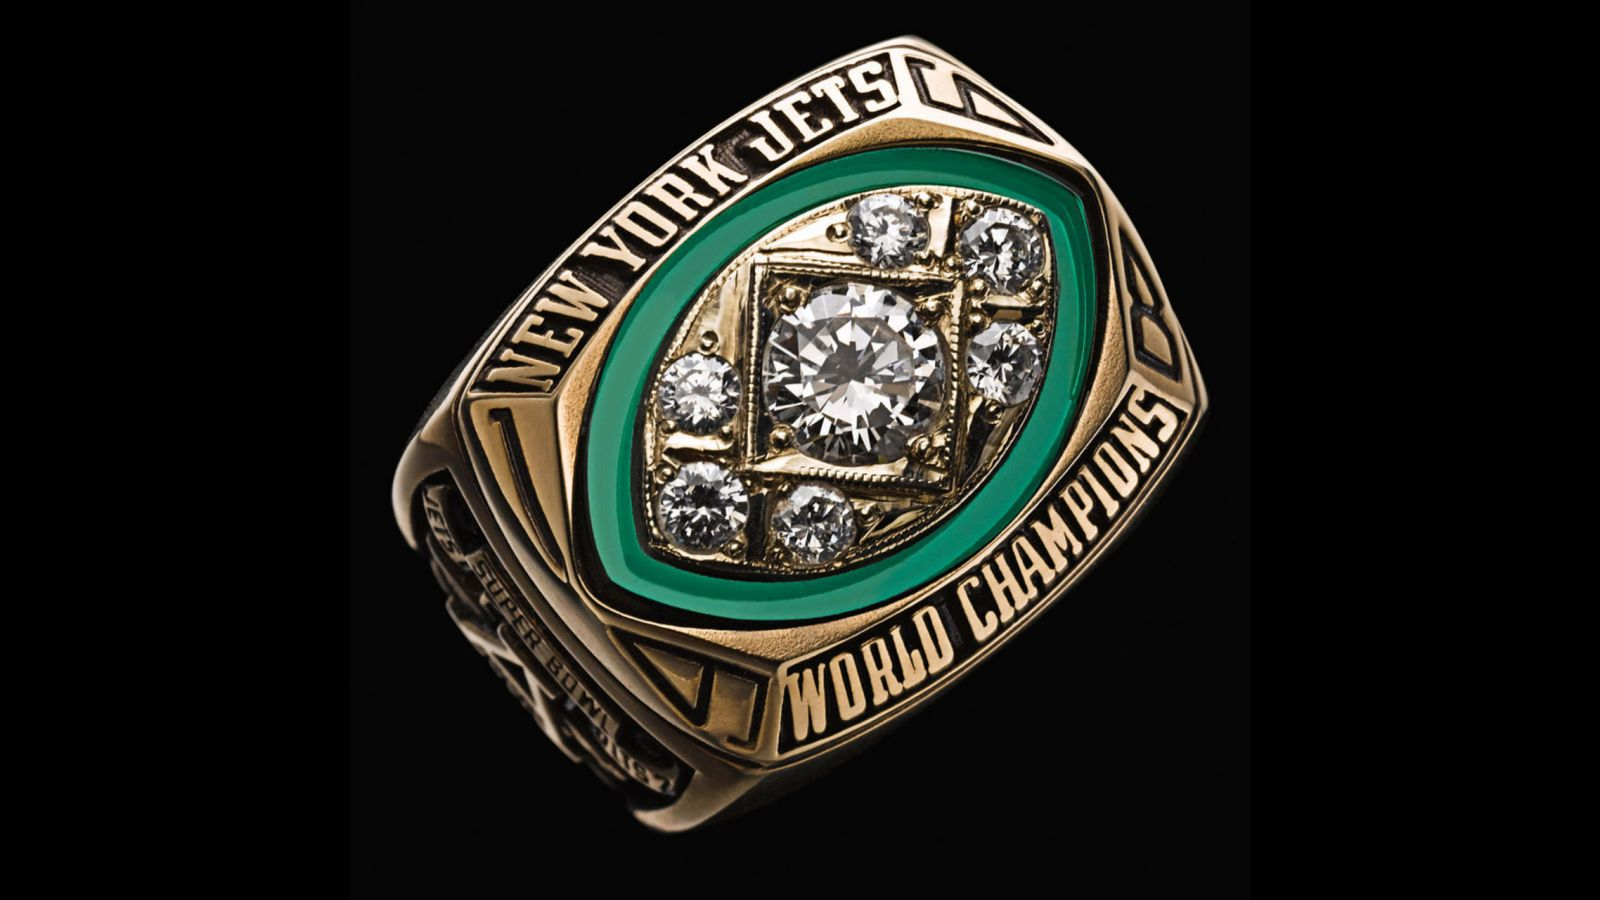 1968 New York Jets Super Bowl Championship Ring